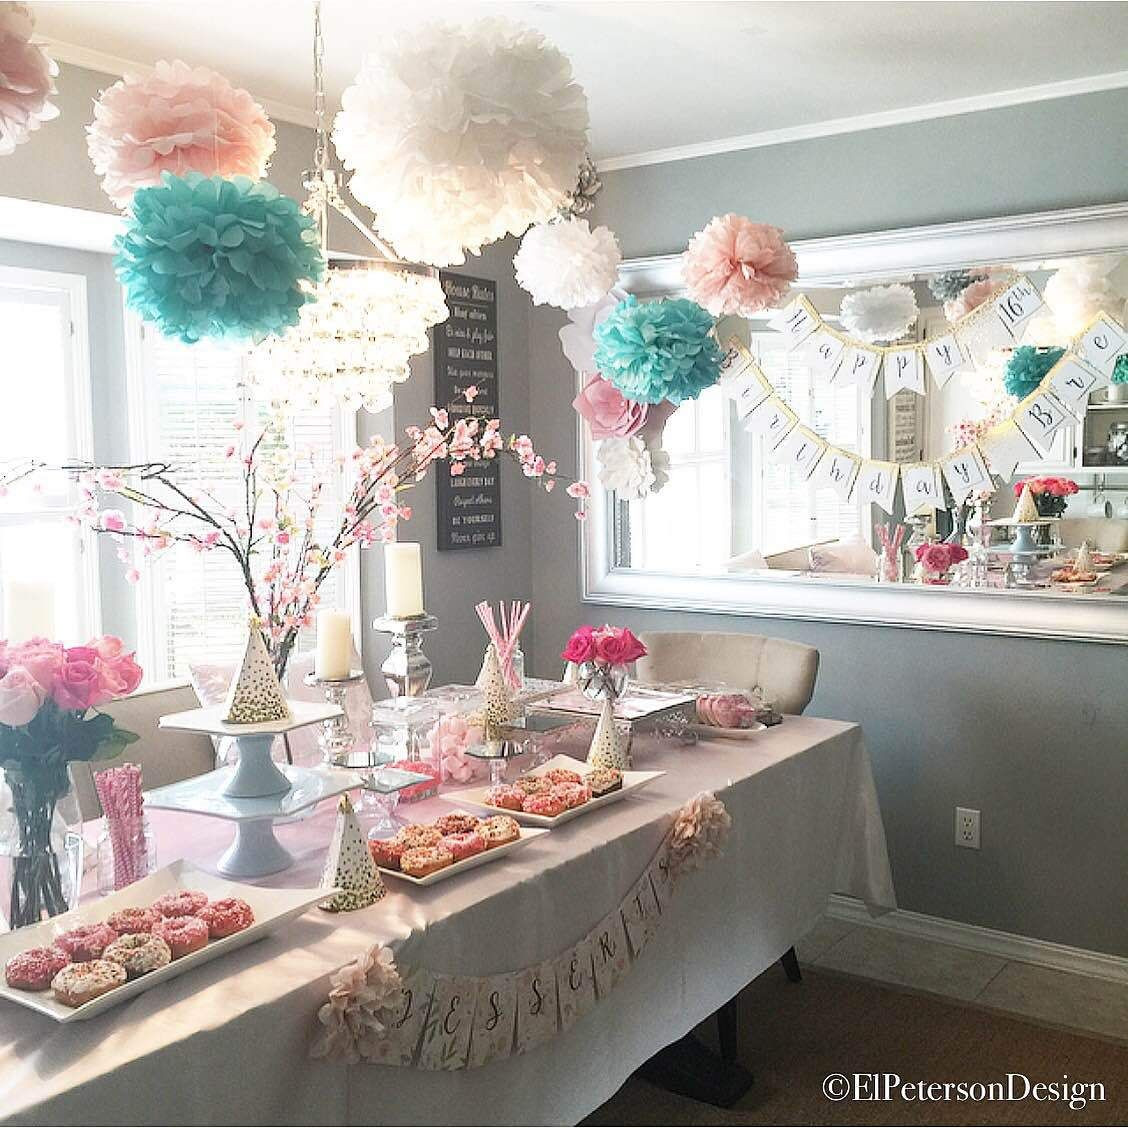 15 Year Old Birthday Party Ideas Summer  How to plan a teenage girls Birthday Party